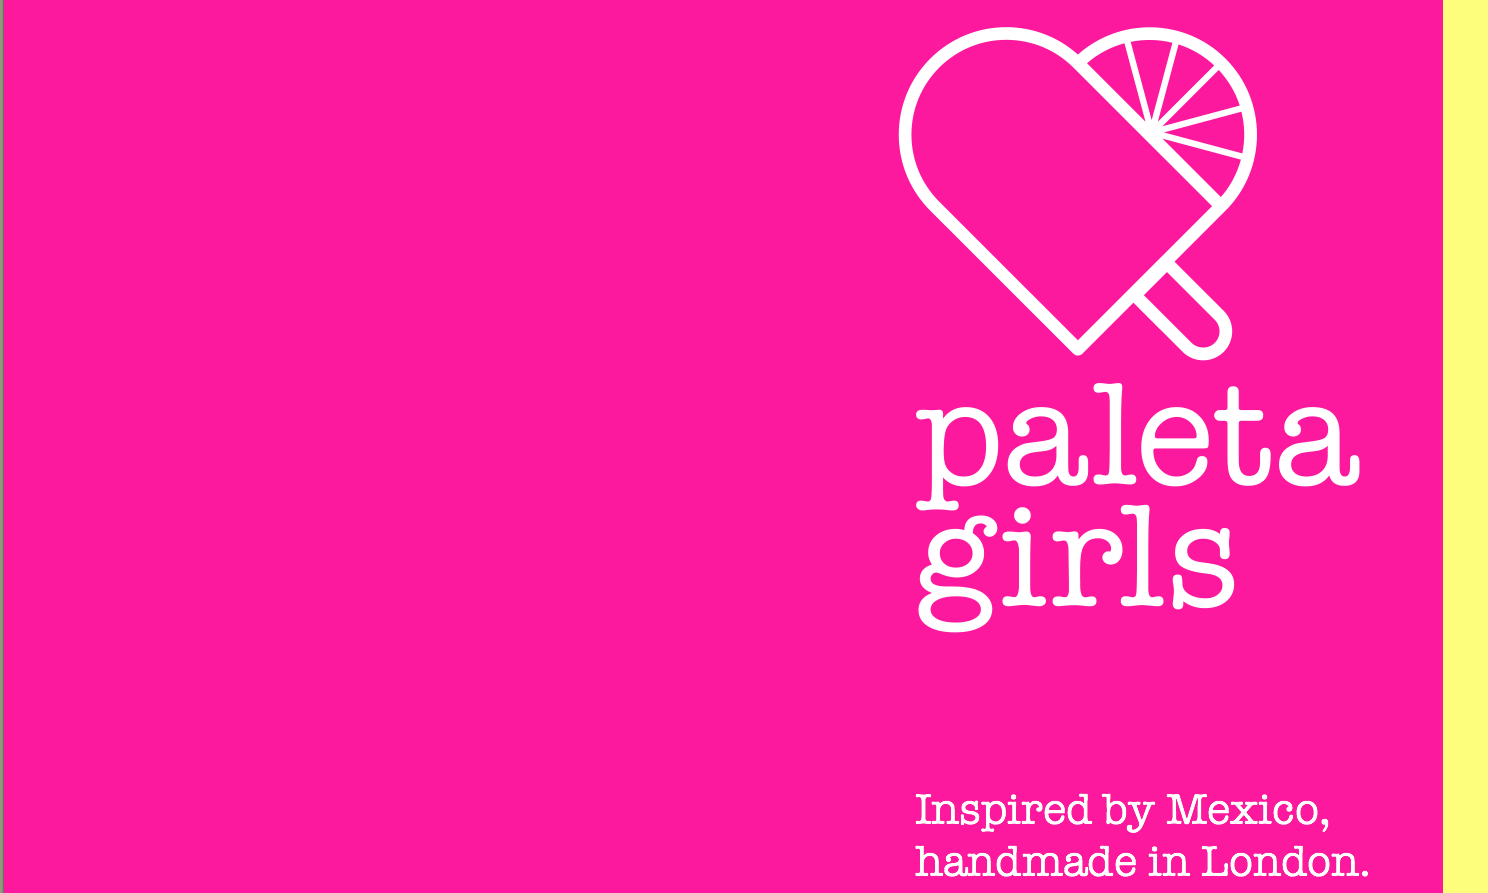 The Paleta Girls! Inspired by Mexico and handmade in London!